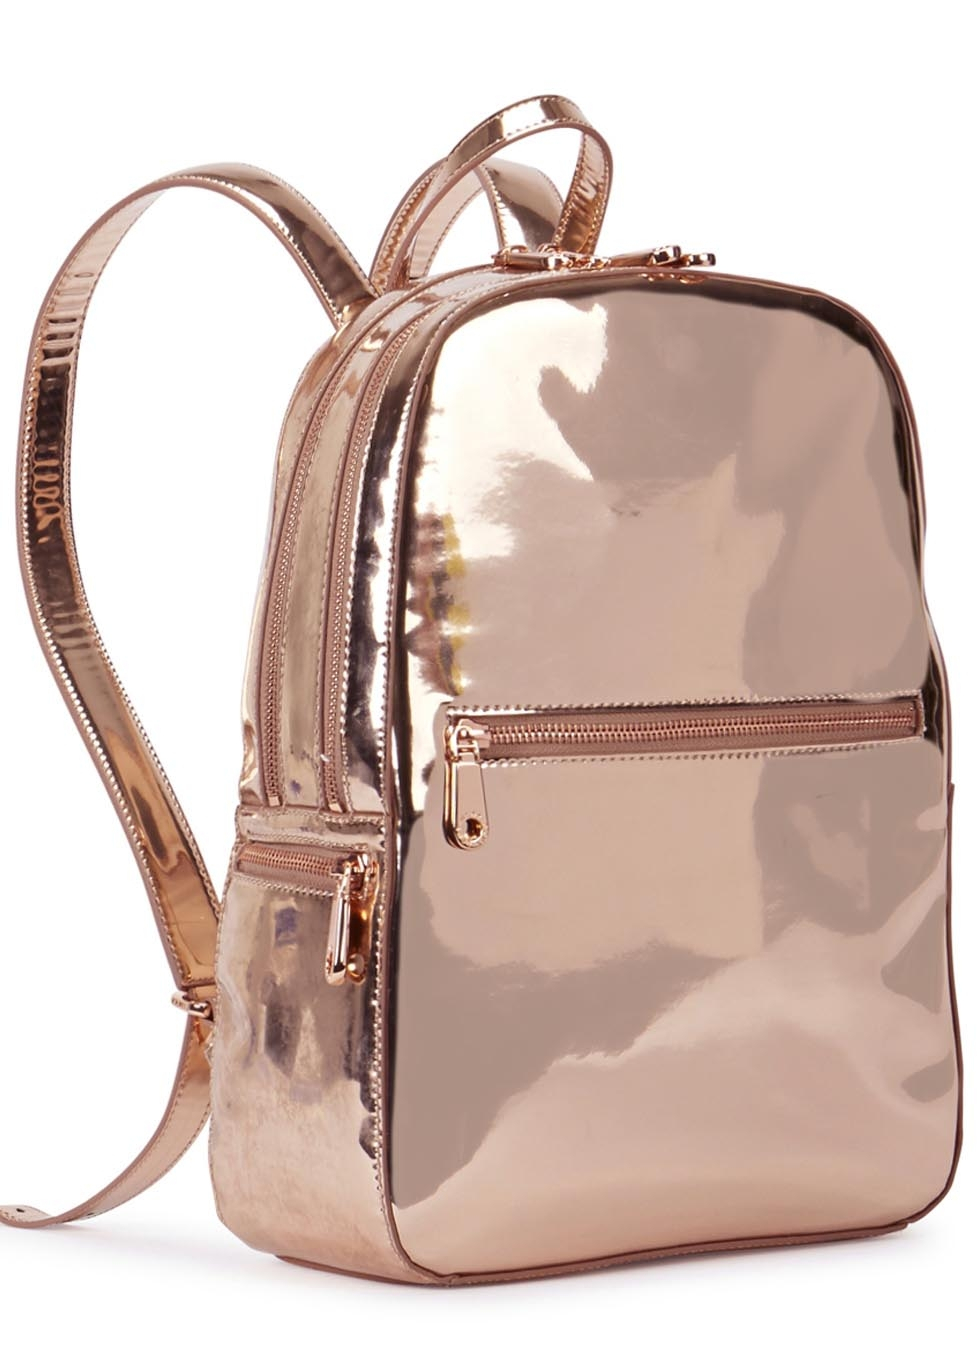 Dkny Rose Gold Leather Backpack in Pink | Lyst : dkny quilted rucksack - Adamdwight.com